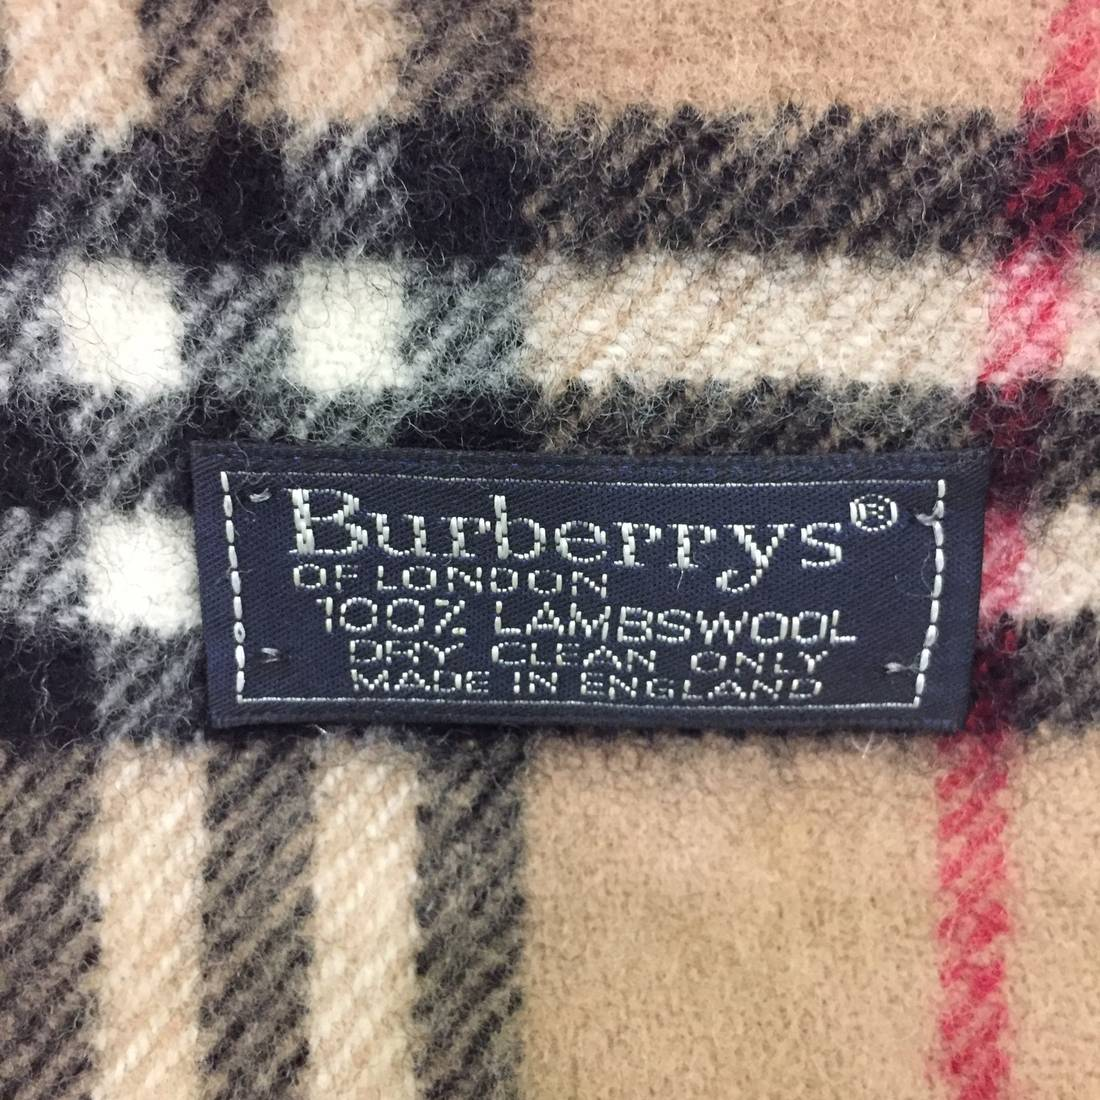 b8caf30ce3ed ... sweden burberry vintage burberrys scarf scarves 100 lambswool plaid  pattern made in england unisex accessories 6b8a8